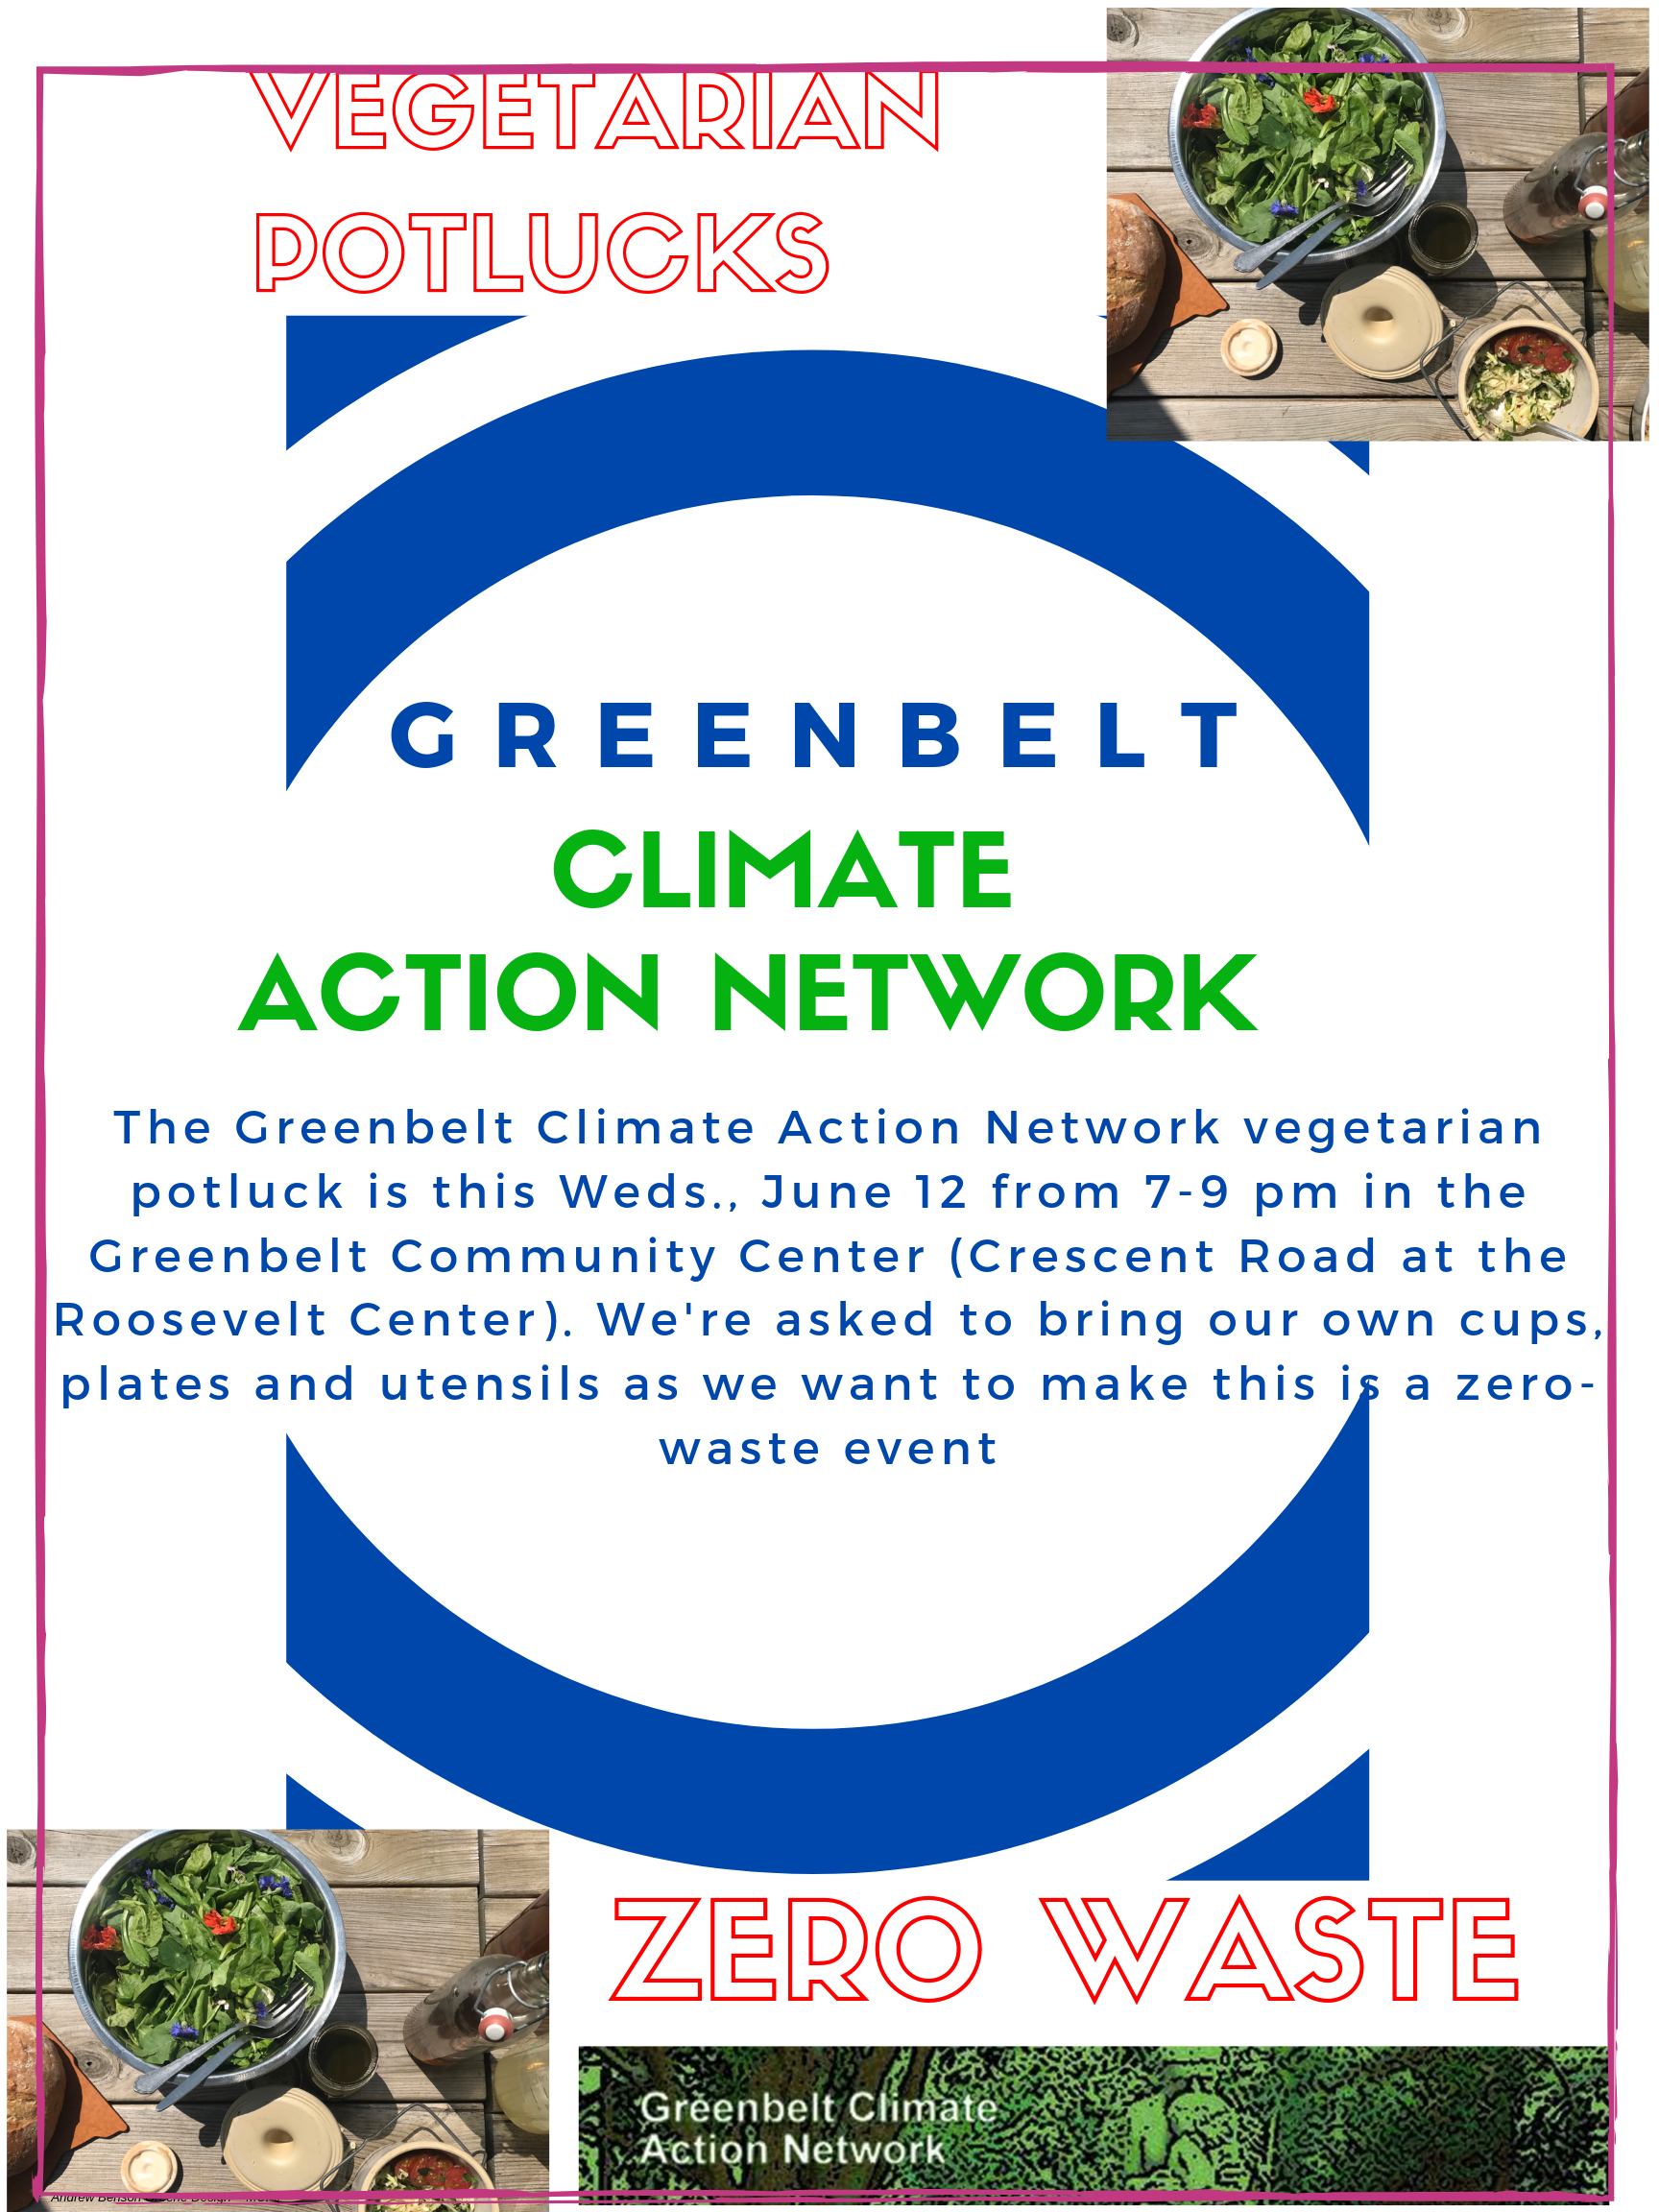 The Greenbelt Climate Action Network vegetarian potluck is this Weds., June 12 from 7-9 pm in the Greenbelt Community Center